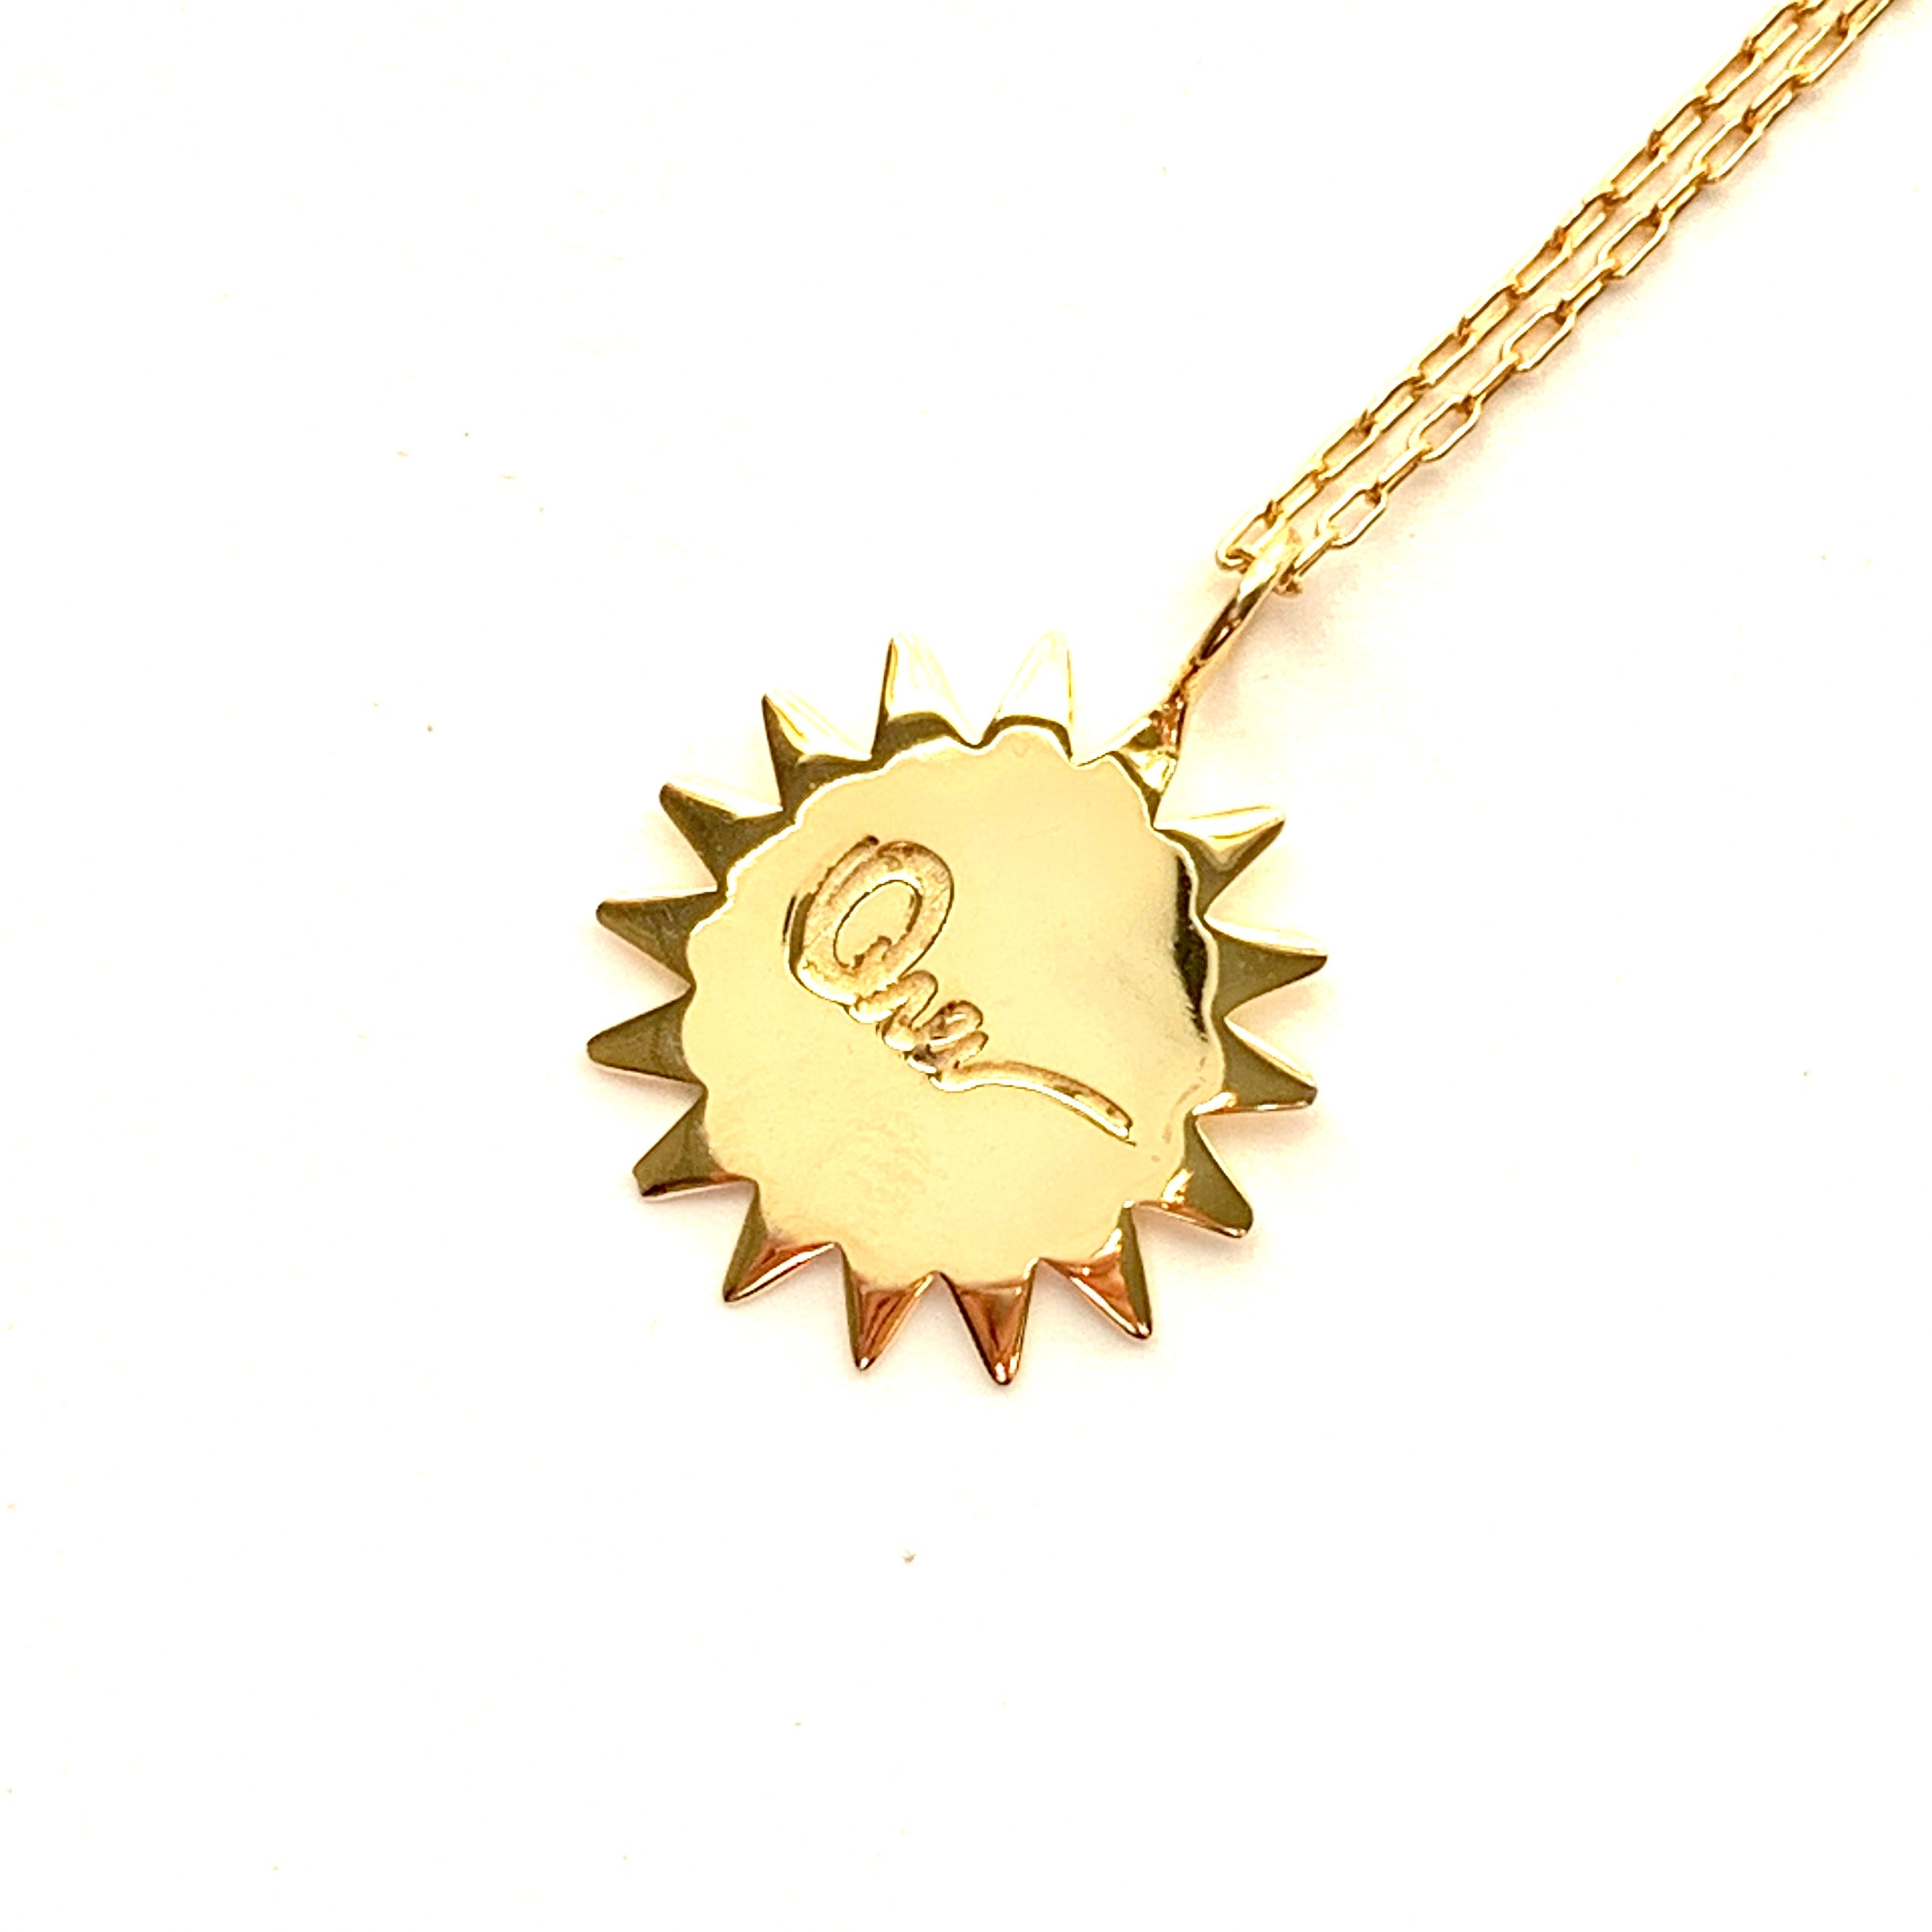 Sunburst with Large Rays in gold plate with rectangle chain